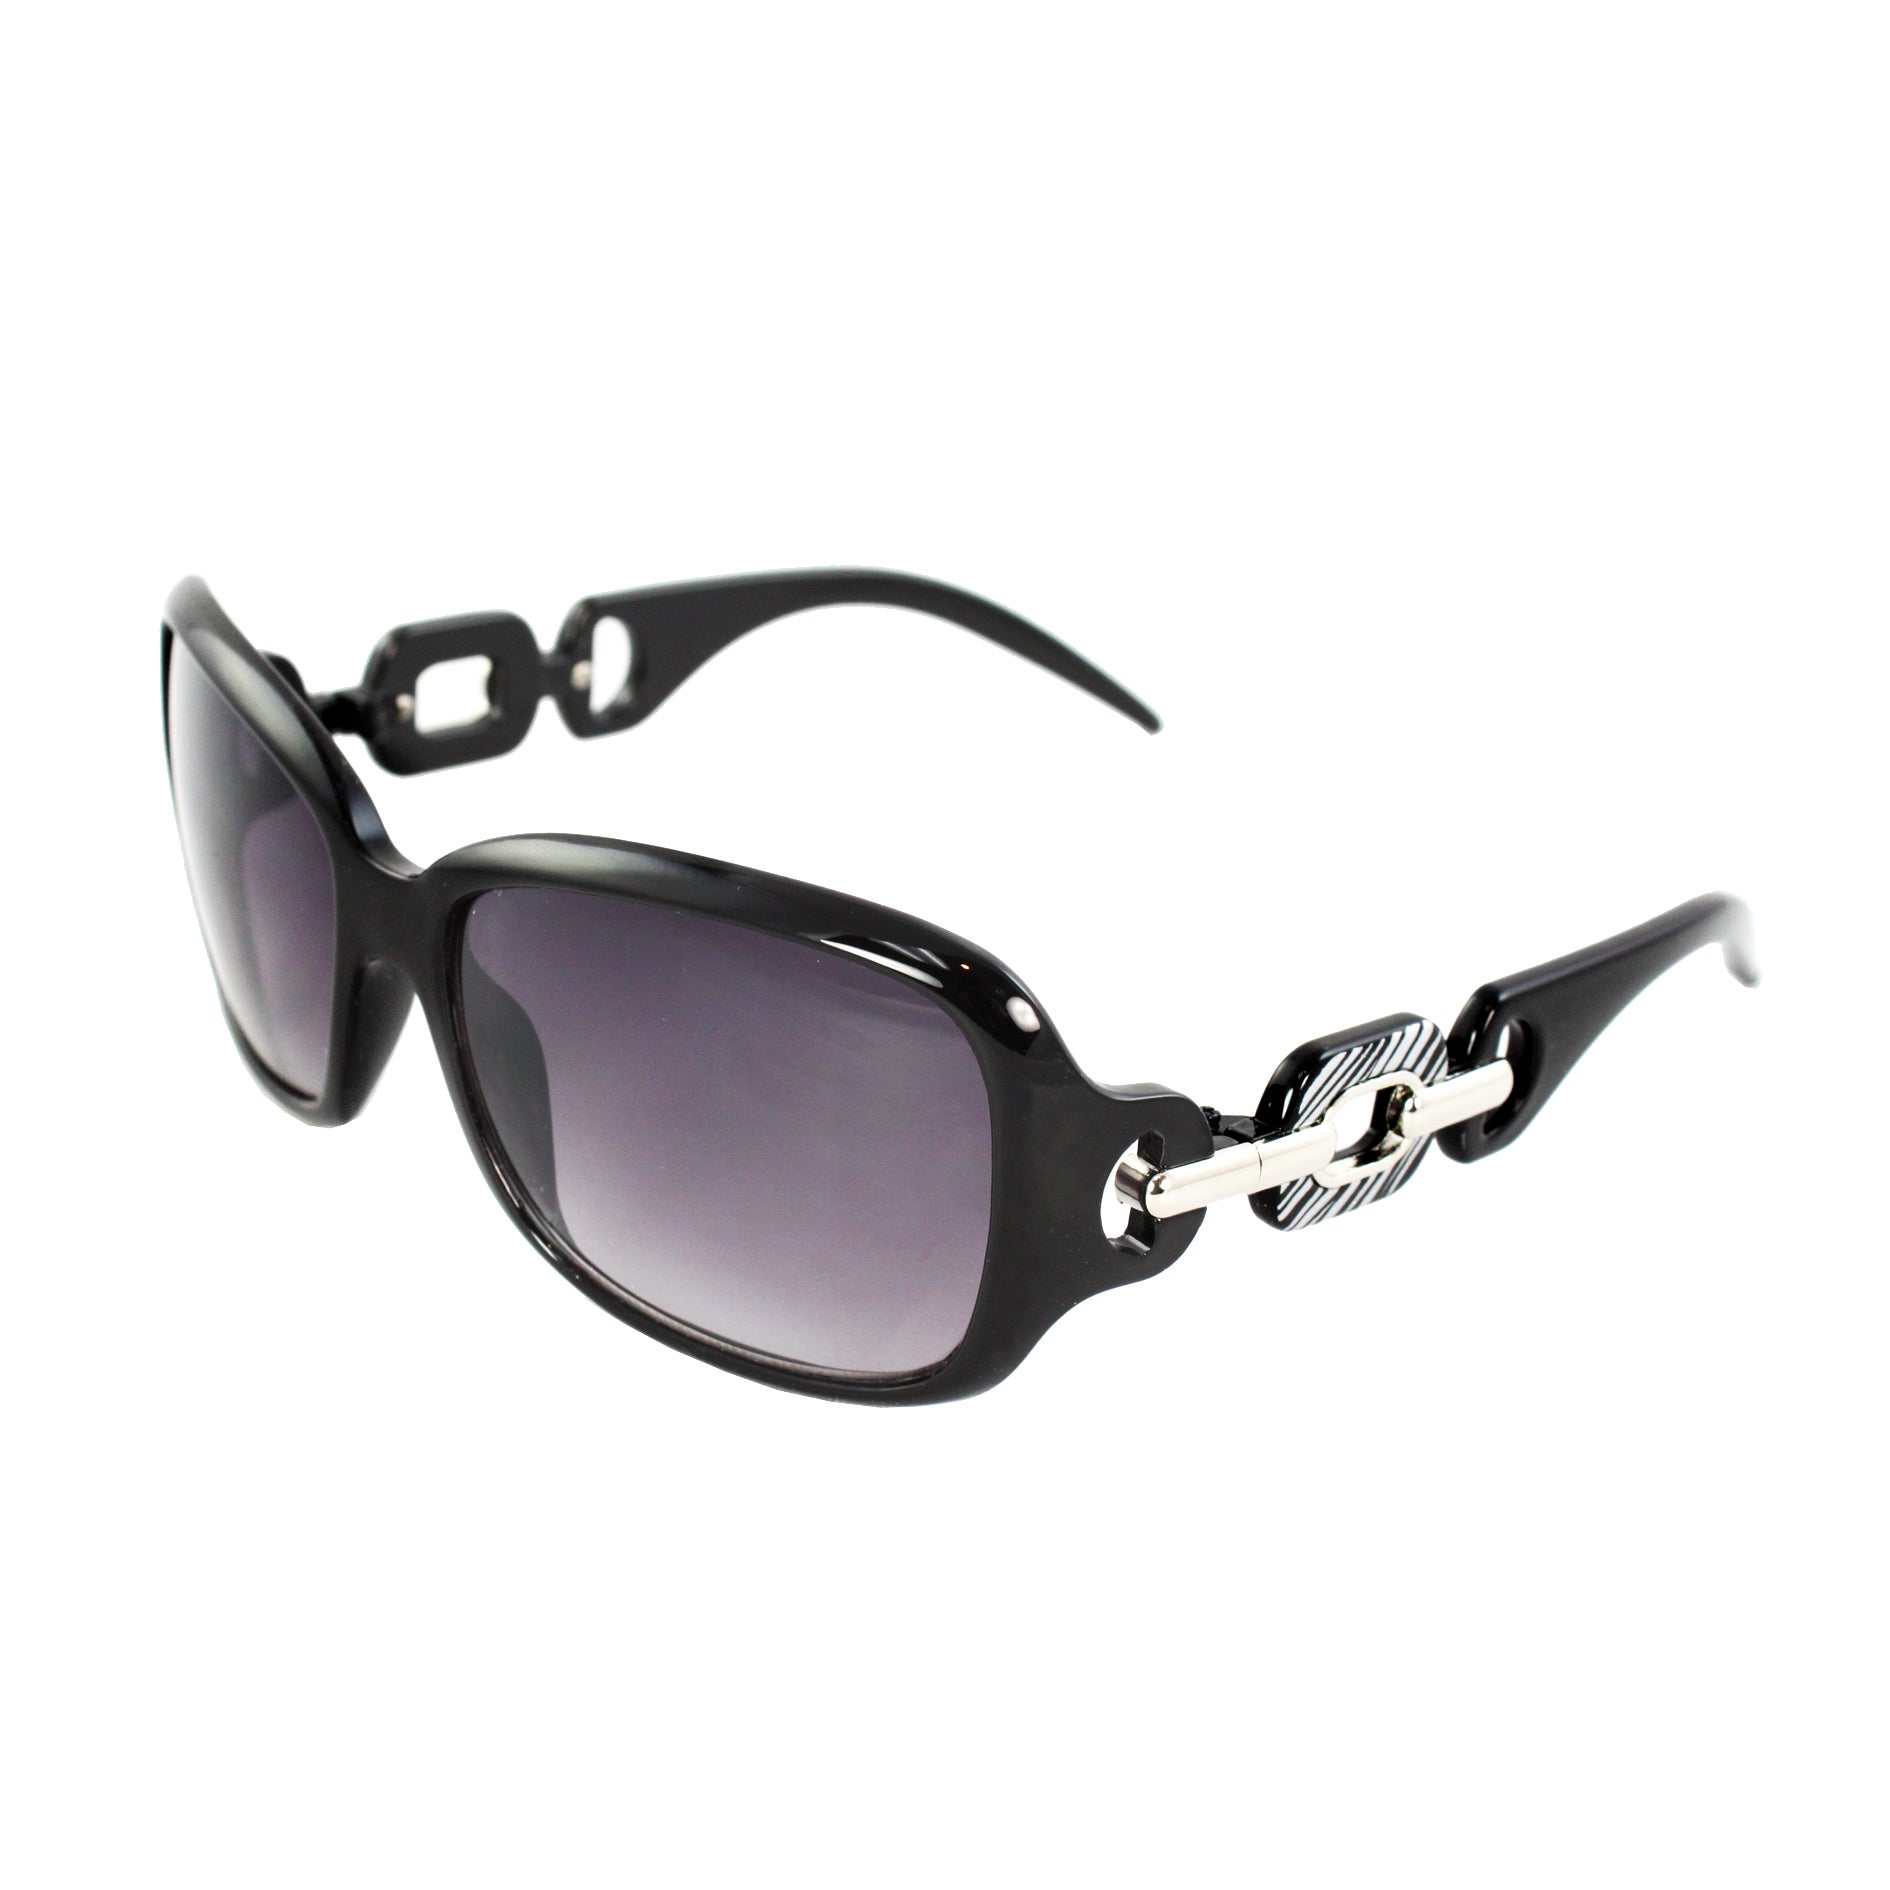 ee21062f70 Shop Square Fashion Sunglasses Black Frame Purple Black Lenses for Women -  Free Shipping On Orders Over  45 - Overstock.com - 6724840